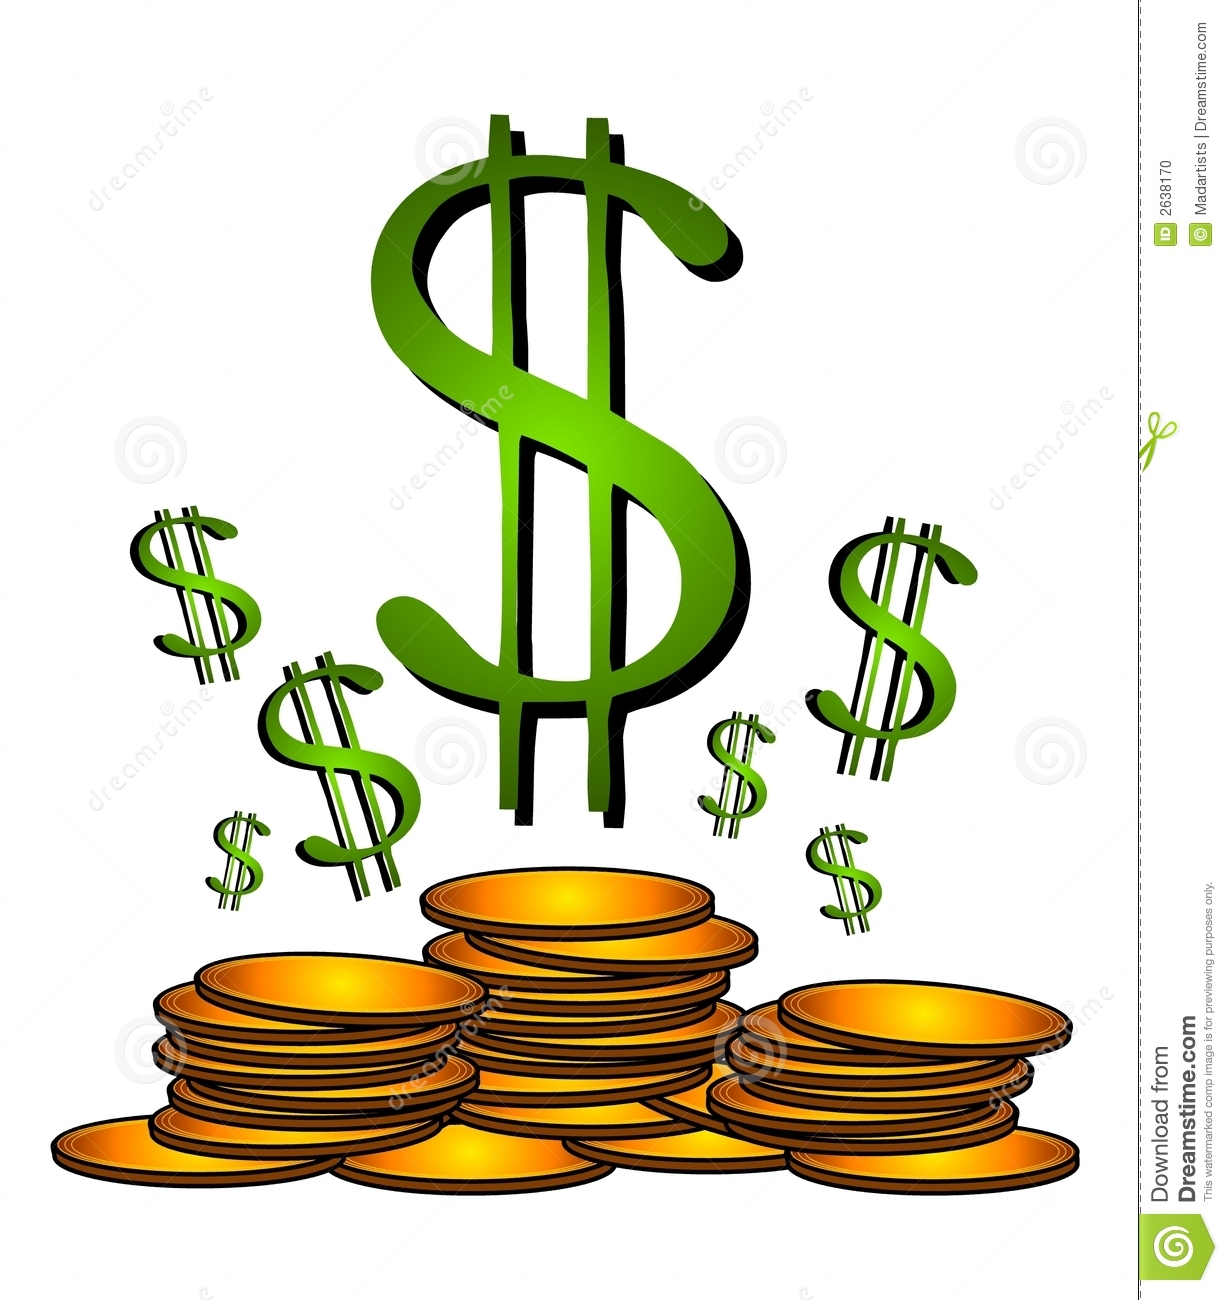 Free Dollar Sign Clipart.